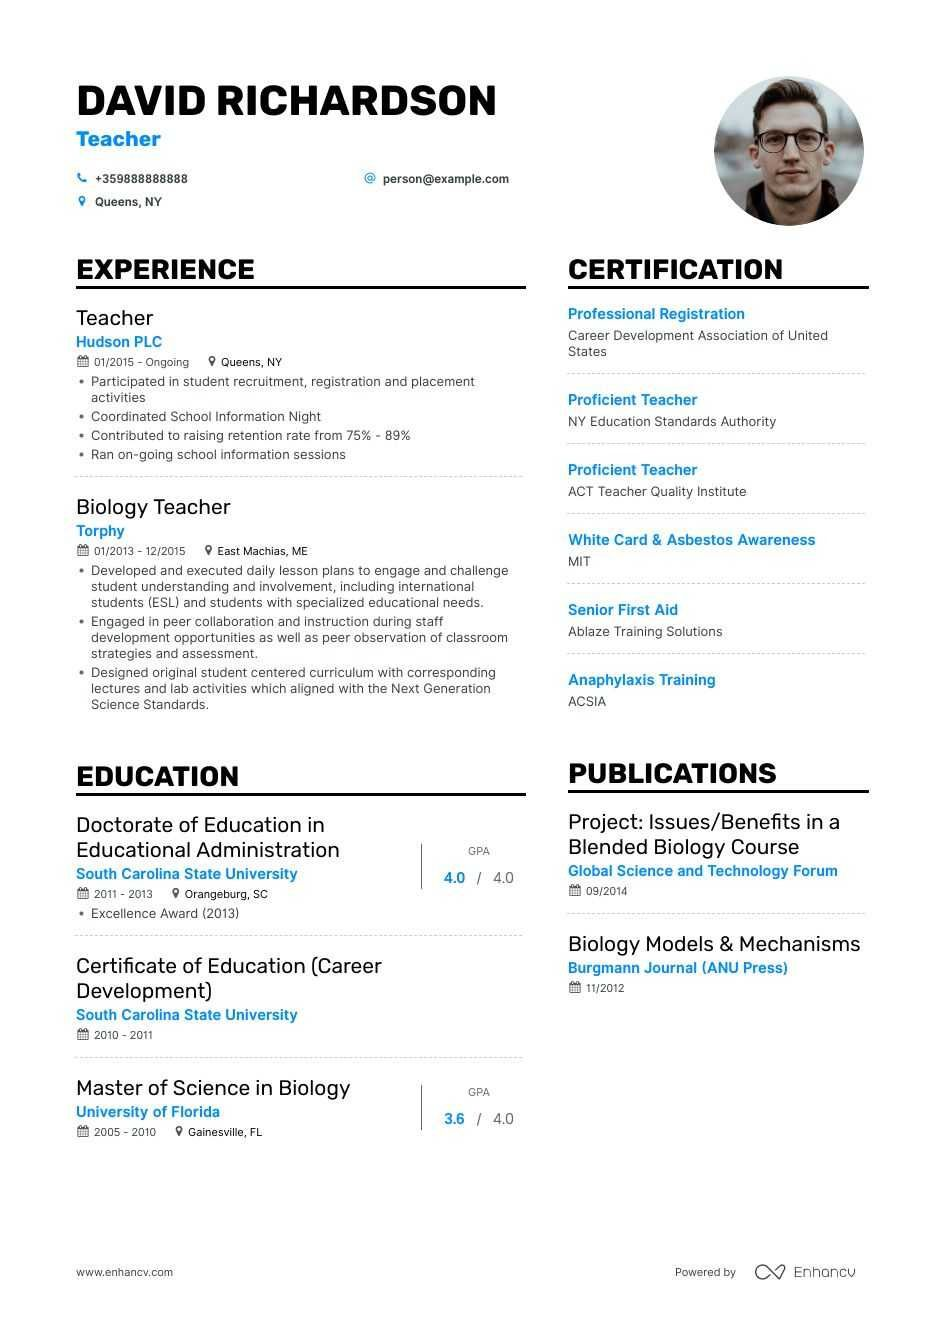 008 Staggering Resume Example For Teaching Photo  Sample Position In College Teacher School Principal IndiaFull